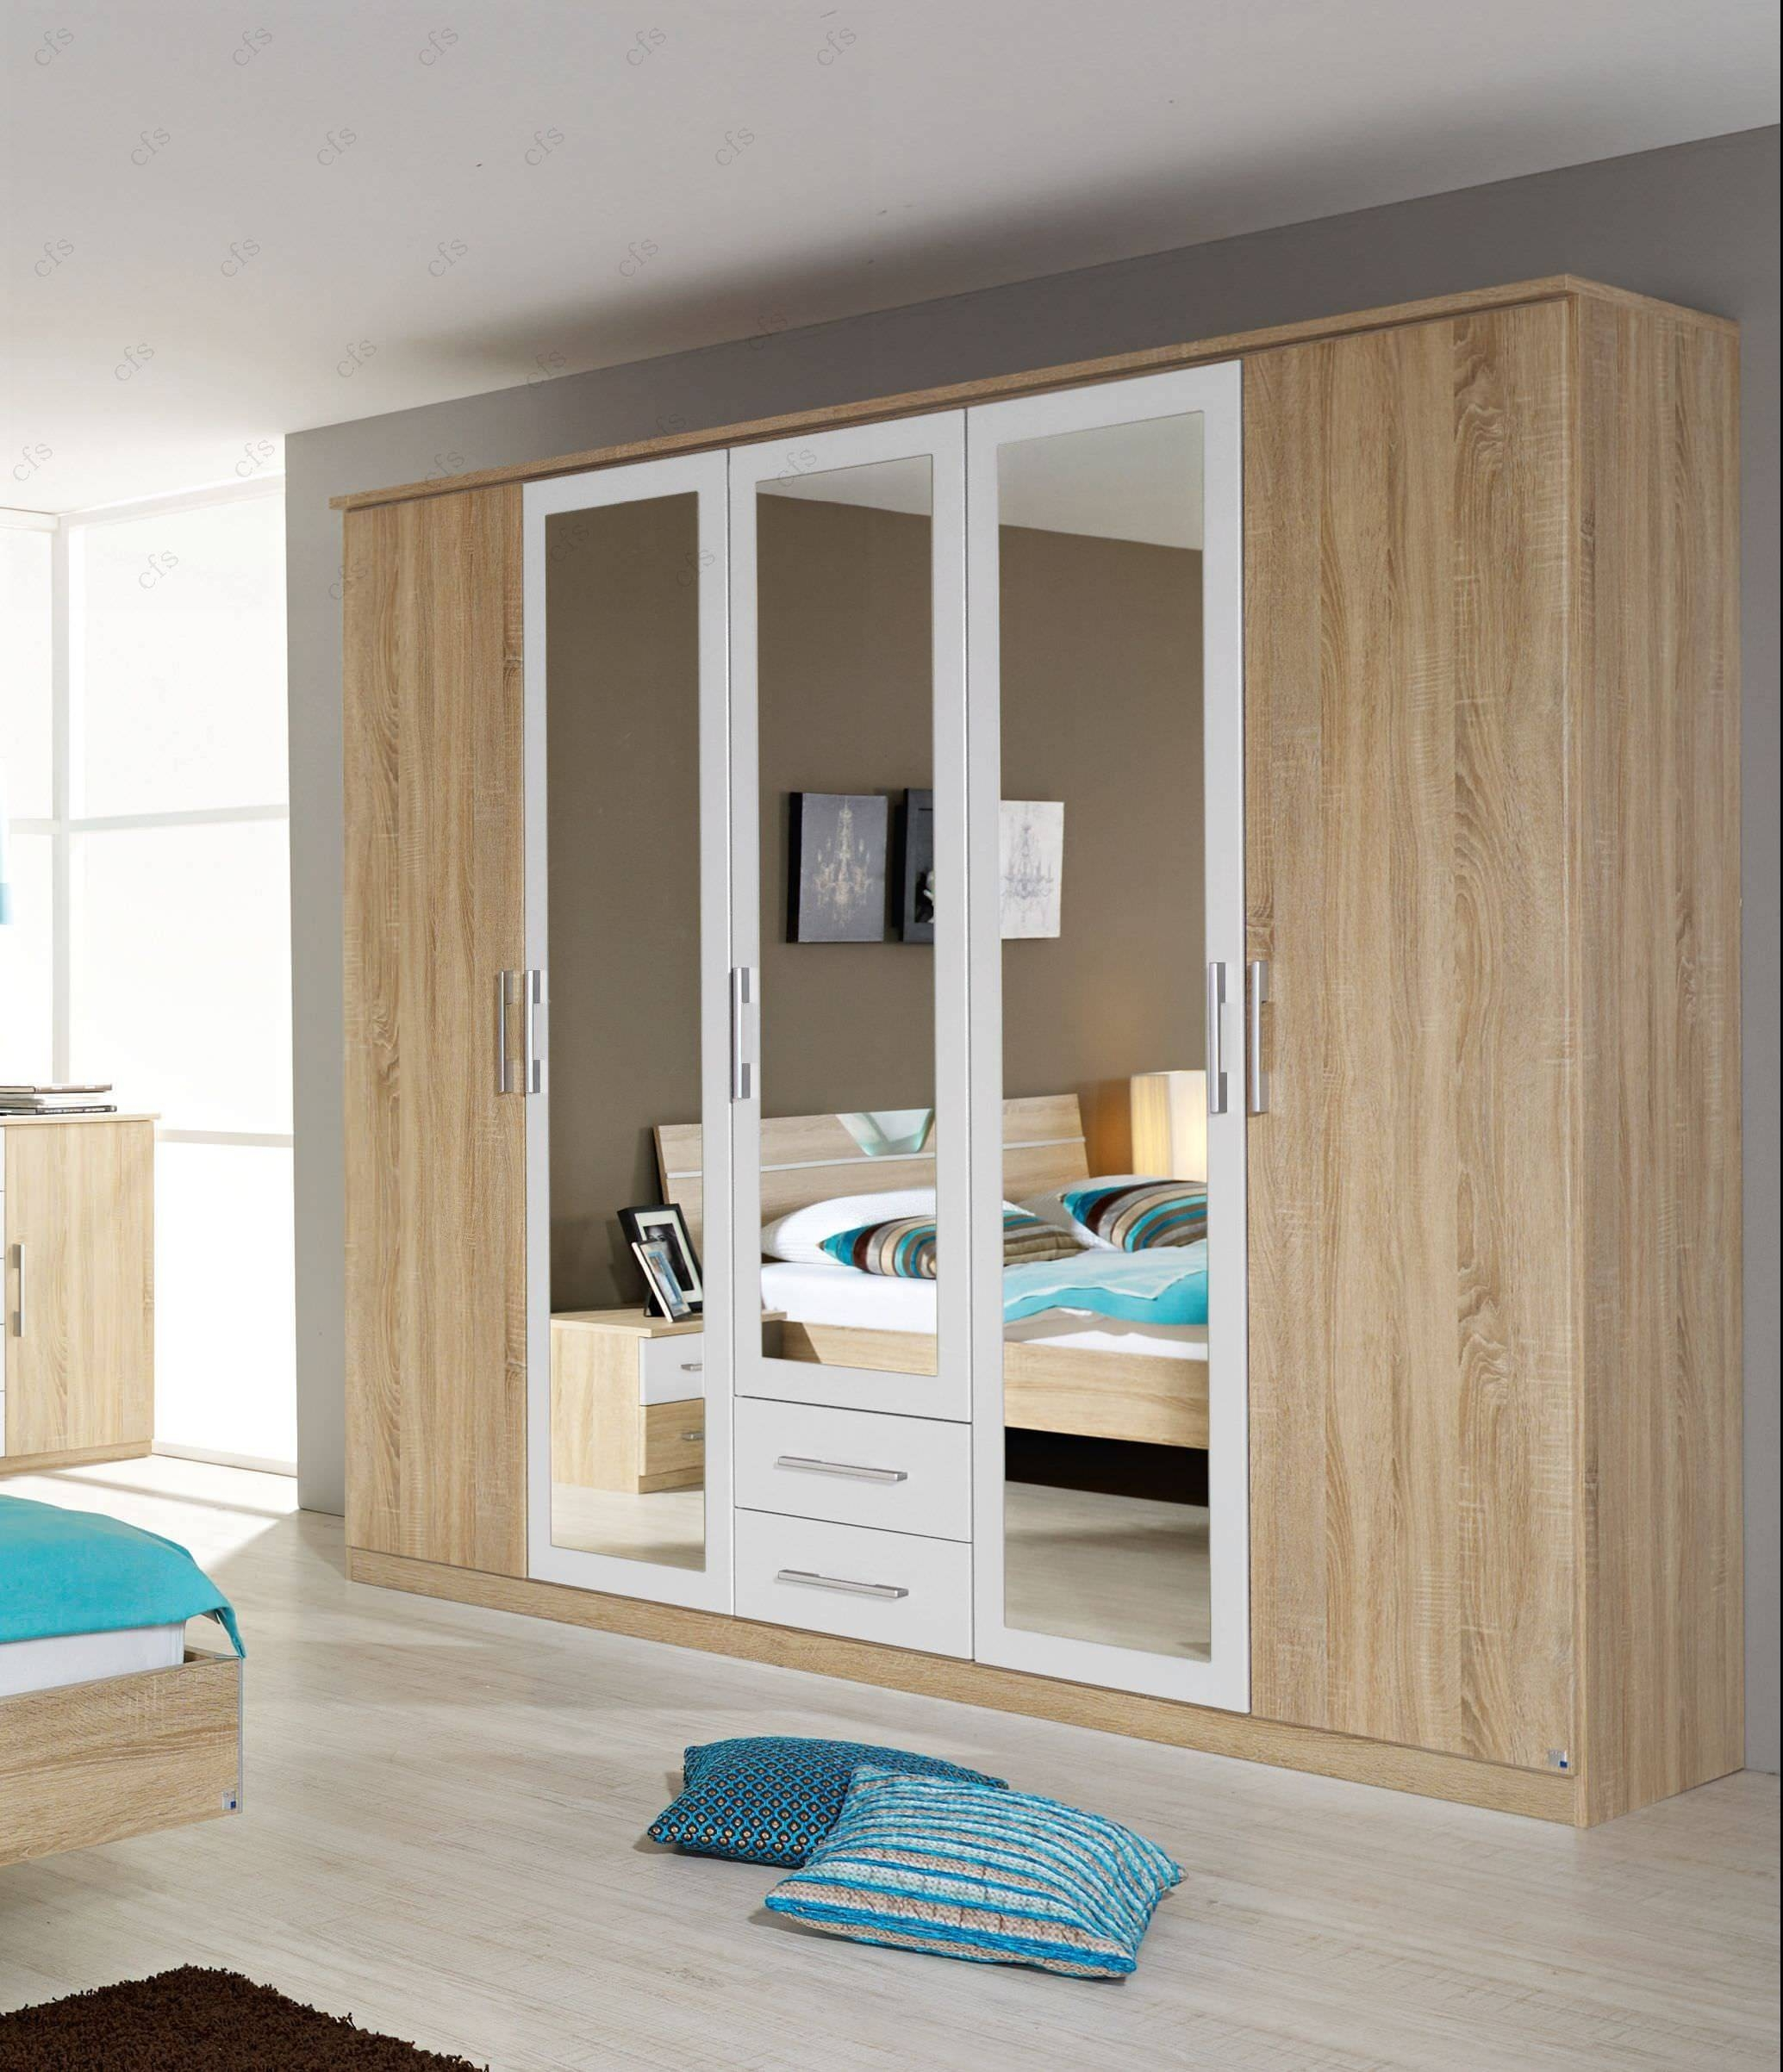 Rauch Furniture | Valence 5 Door Mirror Wardrobe | Bedsdirectuk intended for 5 Door Mirrored Wardrobes (Image 14 of 15)